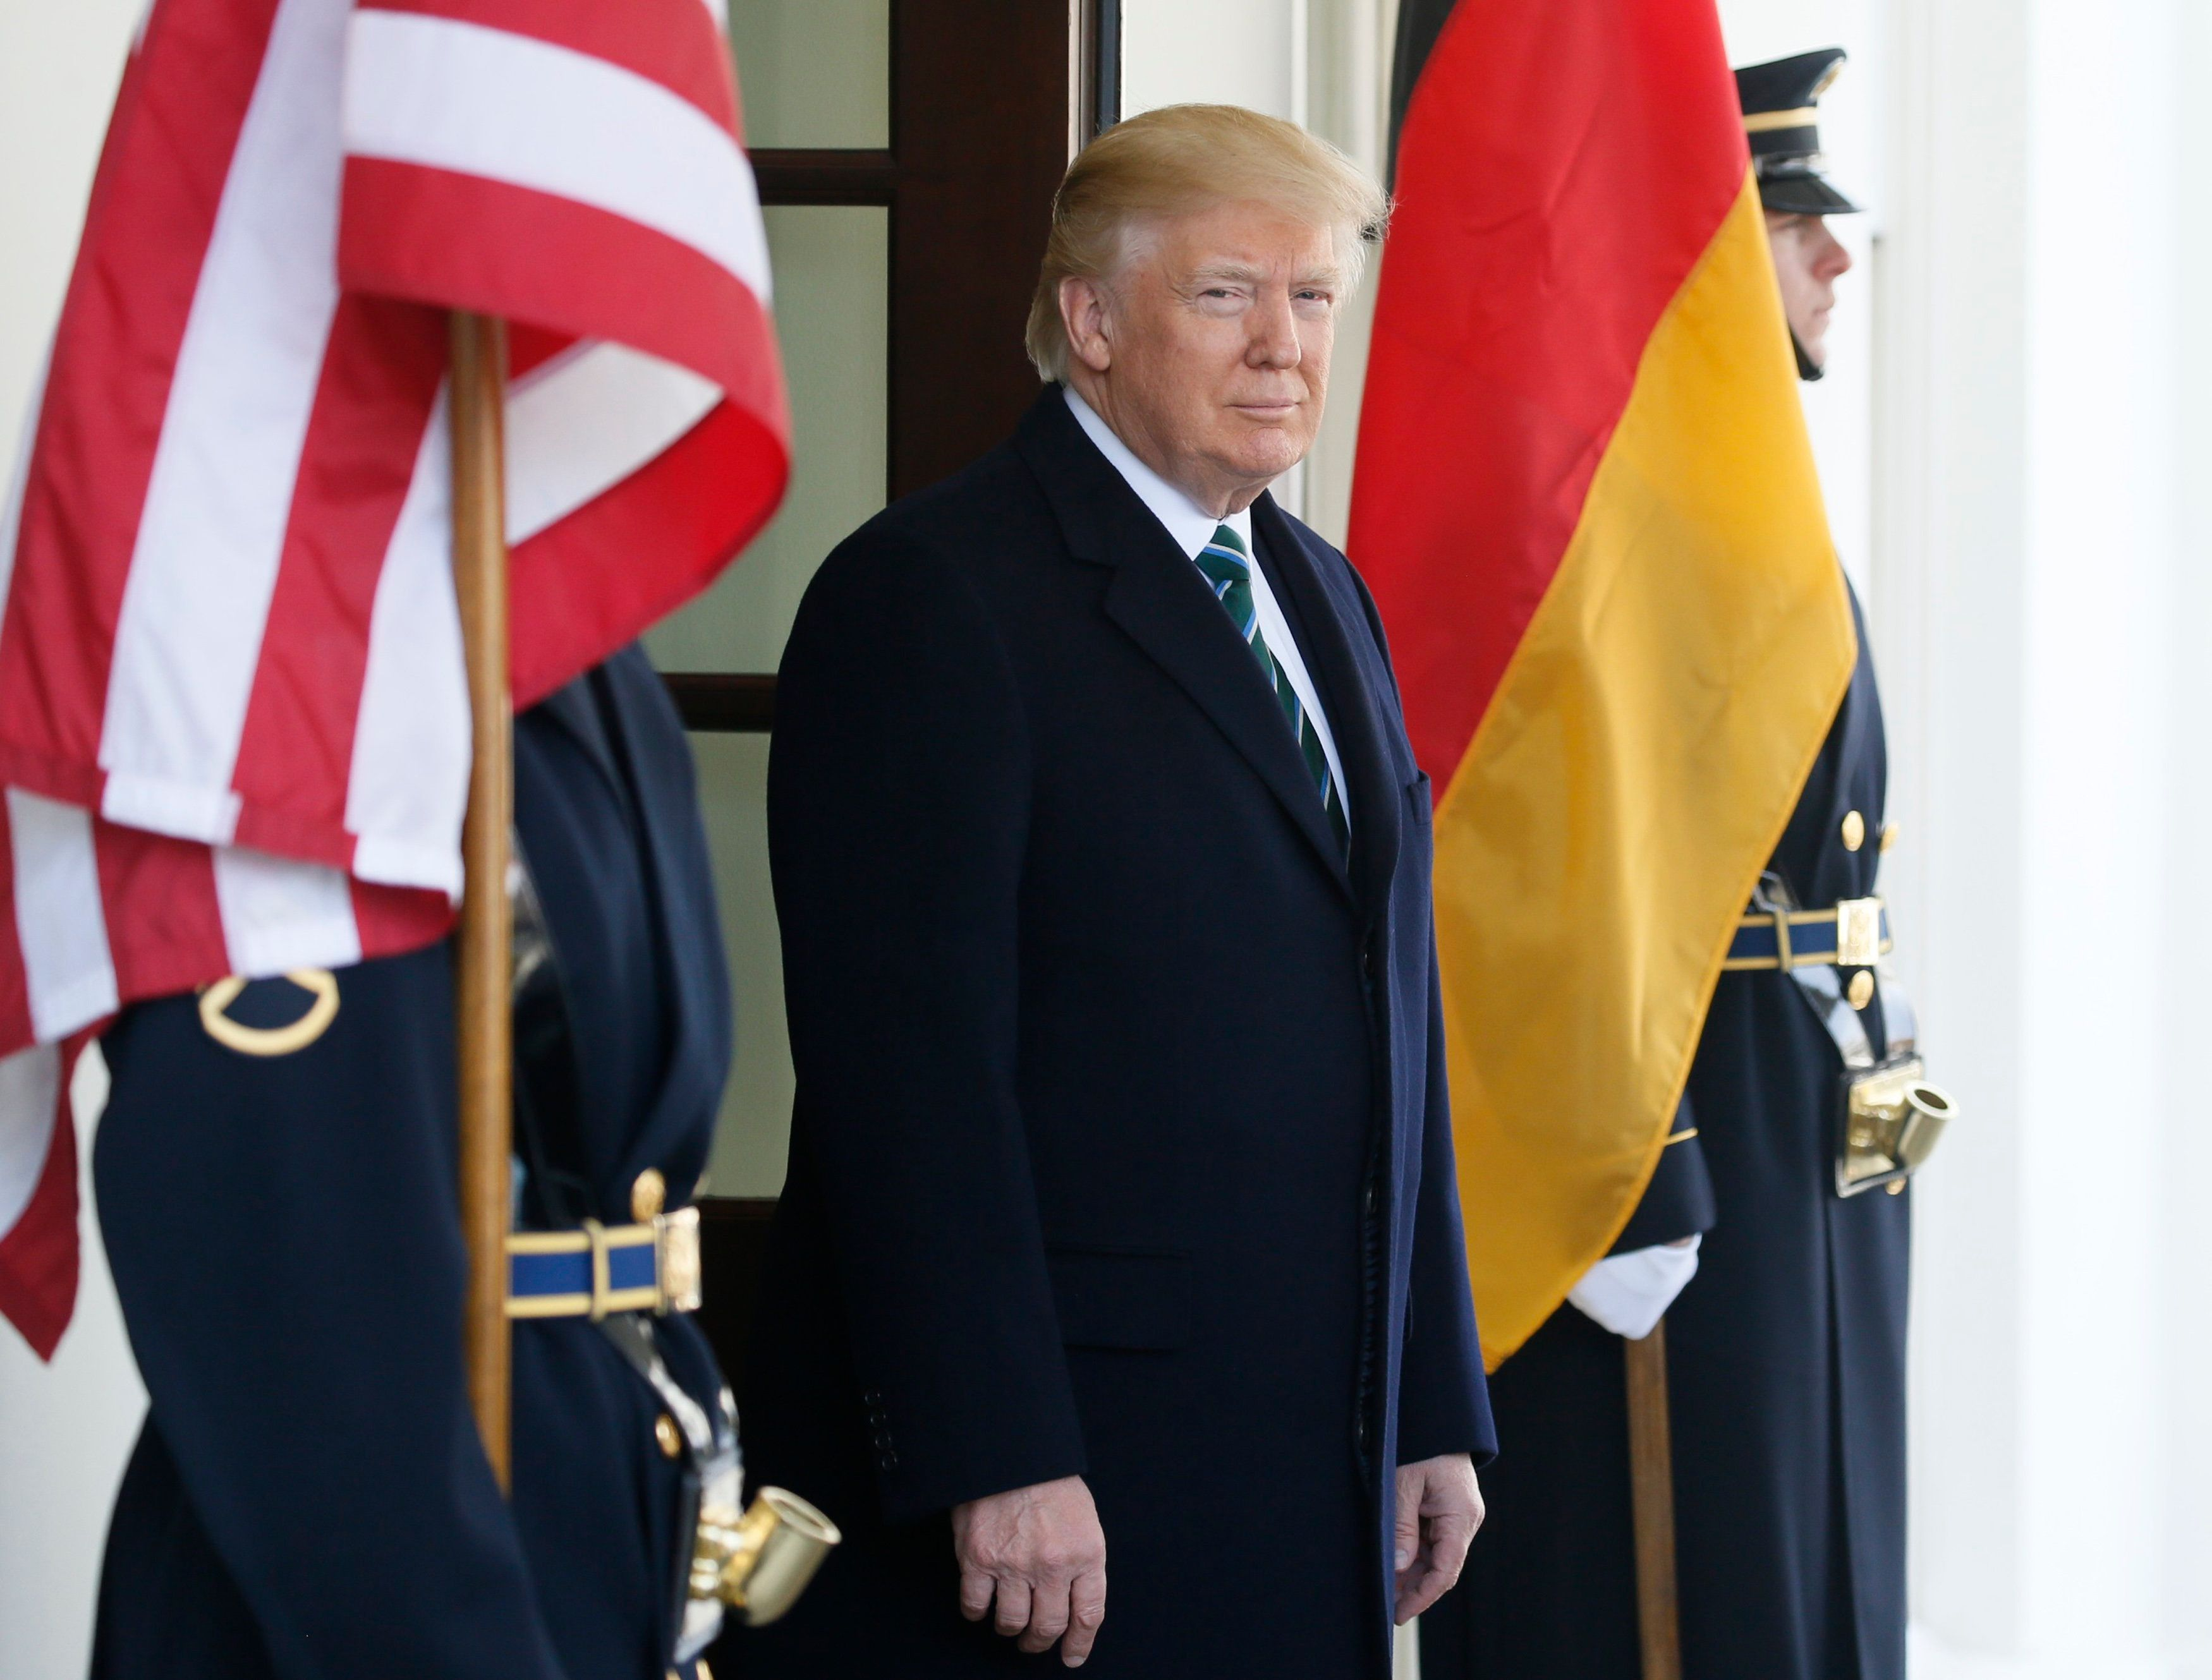 U.S. President Donald Trump awaits the arrival of German Chancellor Angela Merkel at the White House in Washington, U.S., March 17, 2017.   REUTERS/Jim Bourg